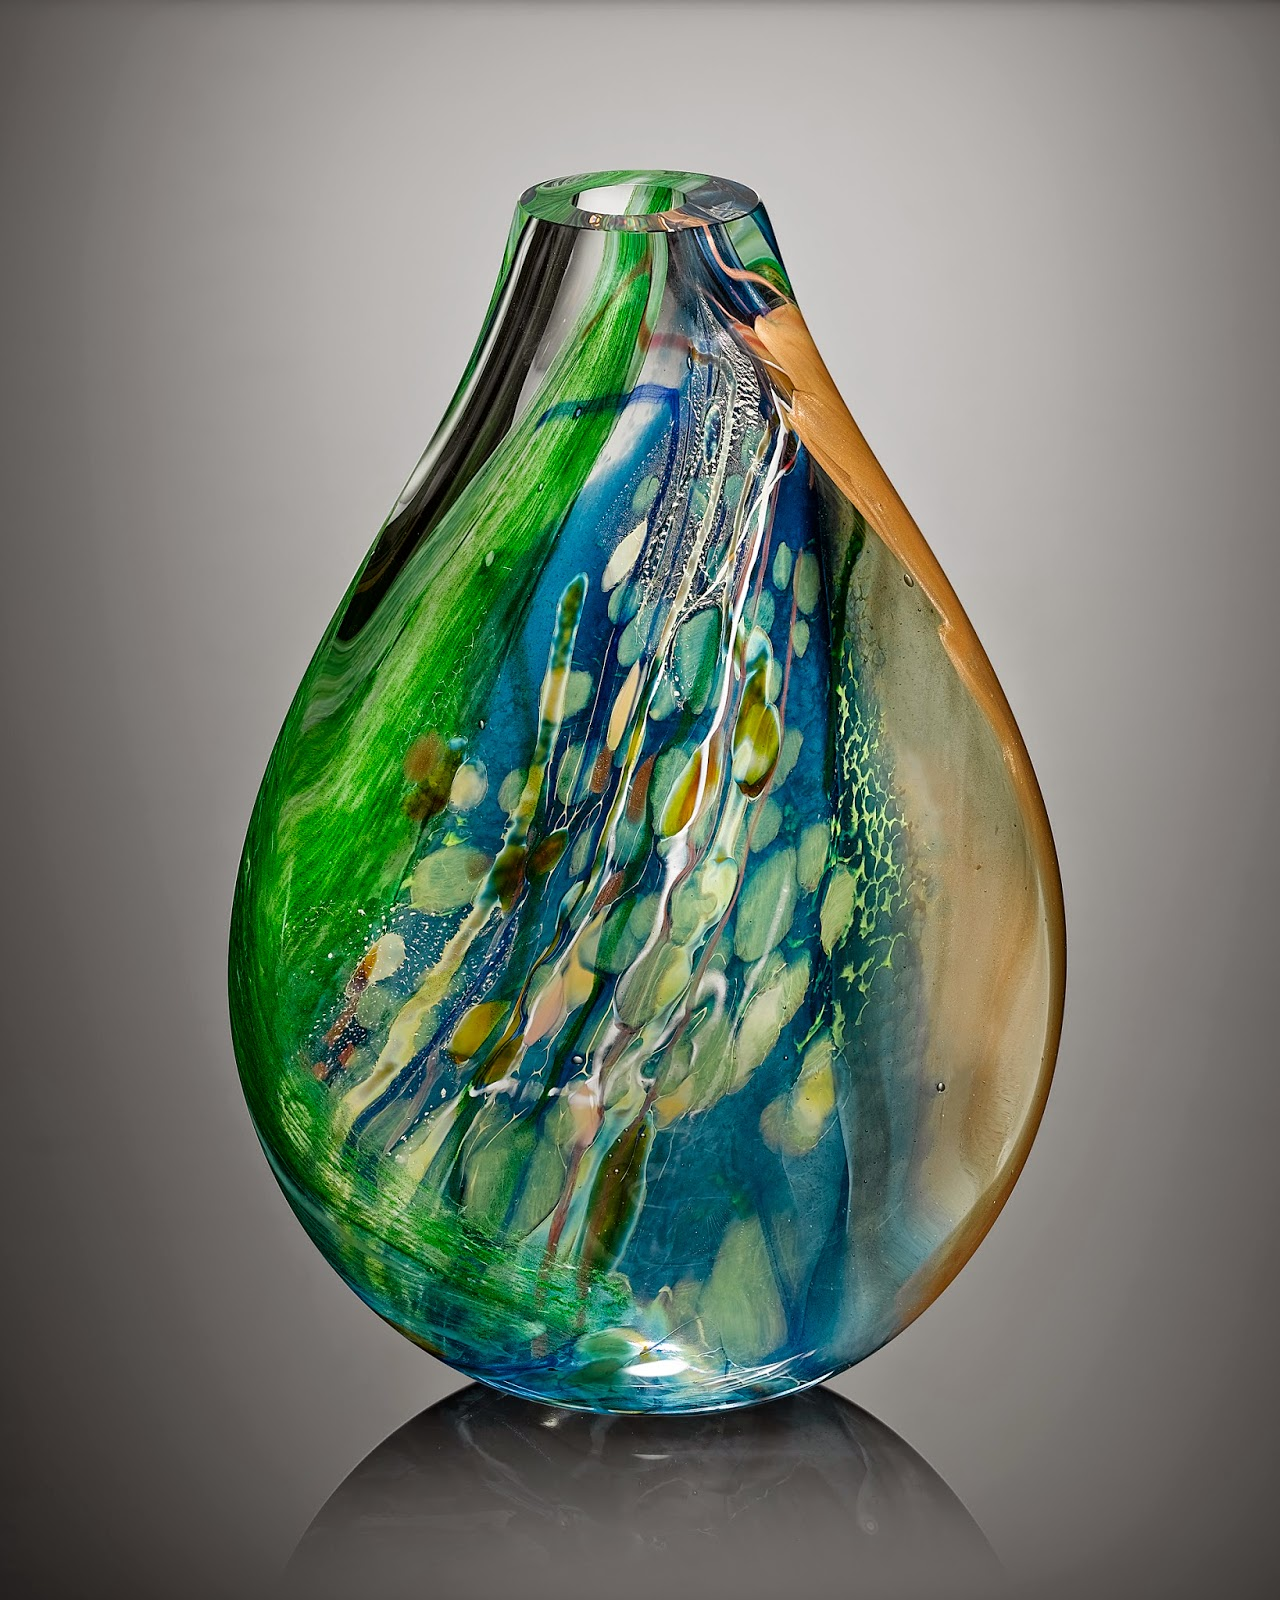 One of a kind contemporary sculptural art glass made in Vermont @Solinglass